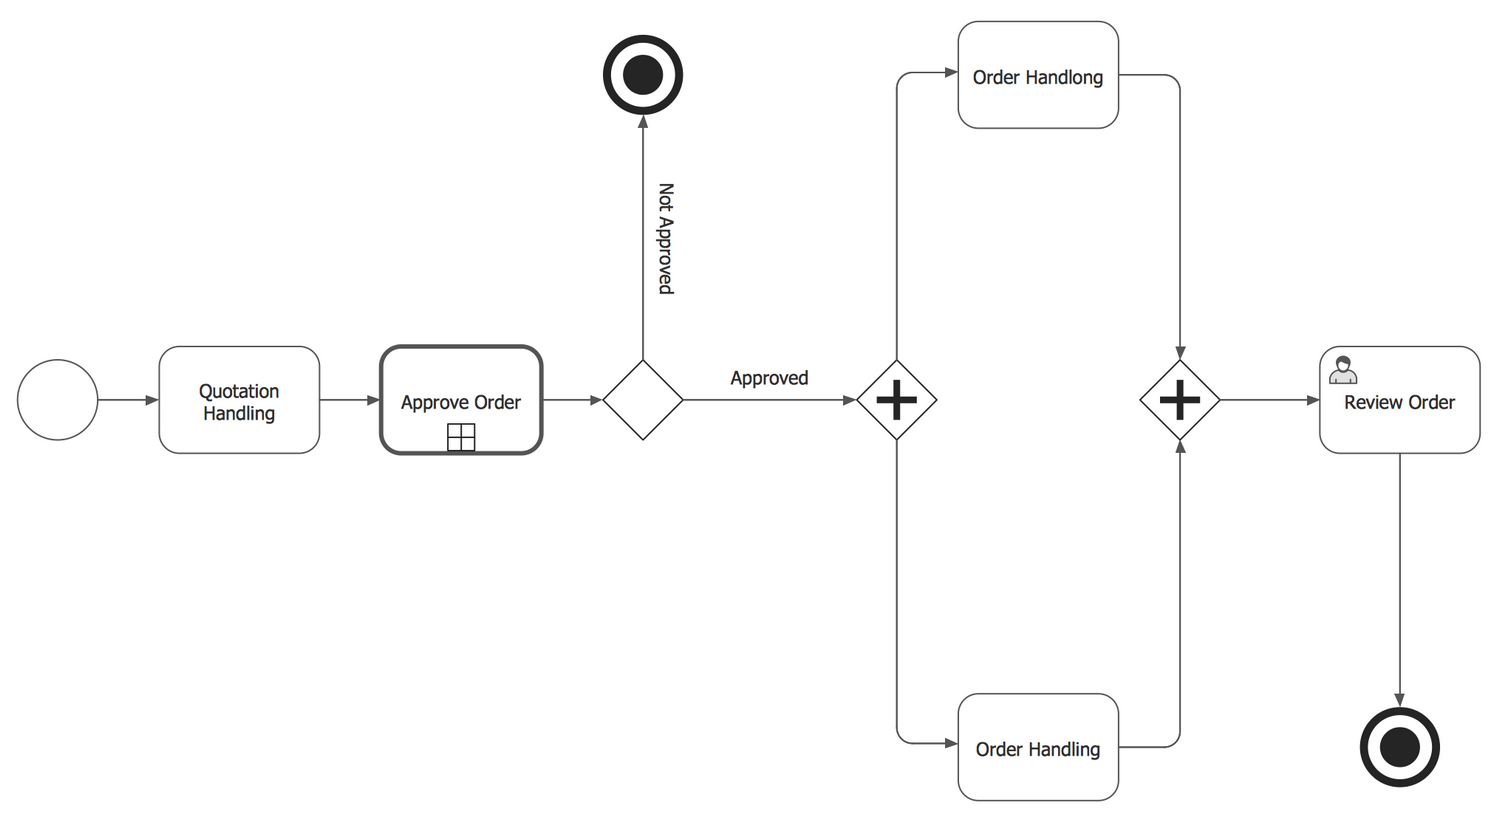 Order Process — BPMN 2.0 Diagram